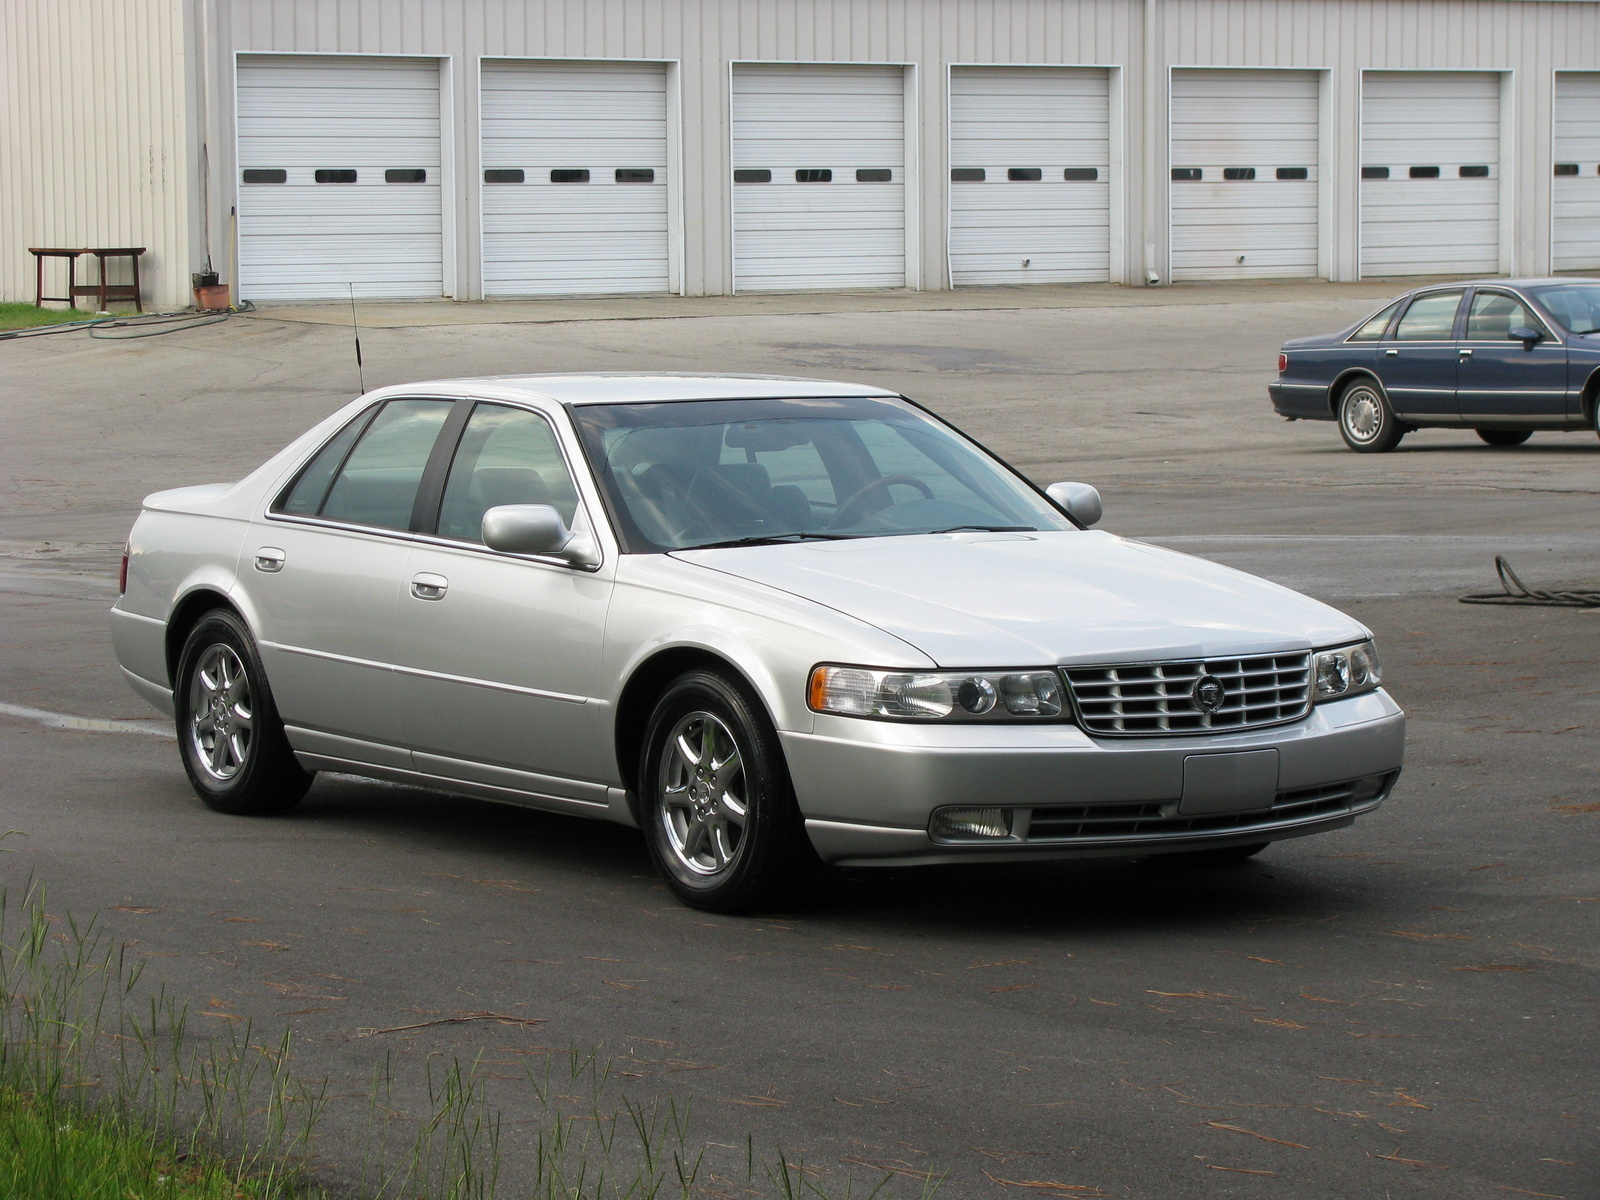 2000 Cadillac Seville Overview CarGurus